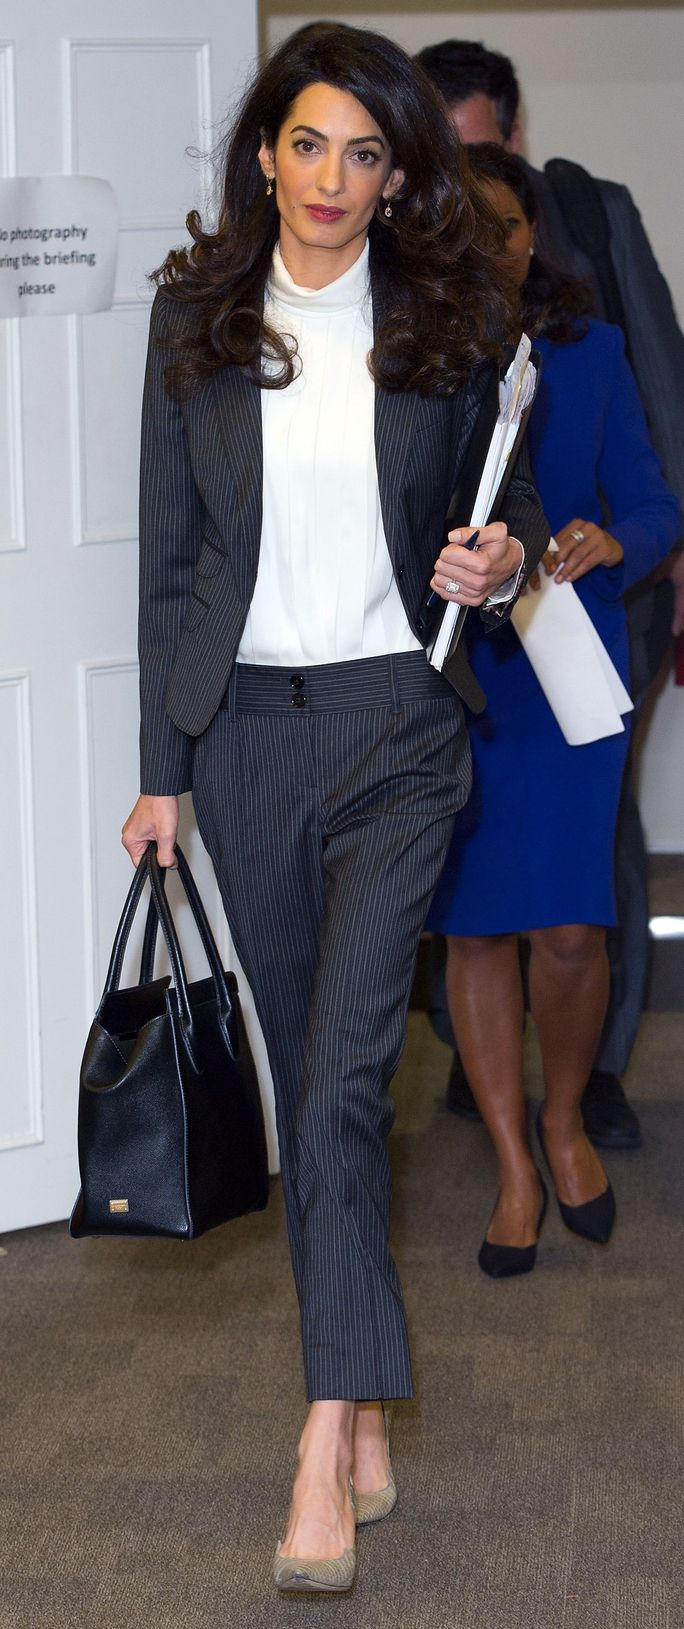 Amal Clooney wowed in a pinstripe suit while hard at work in London.